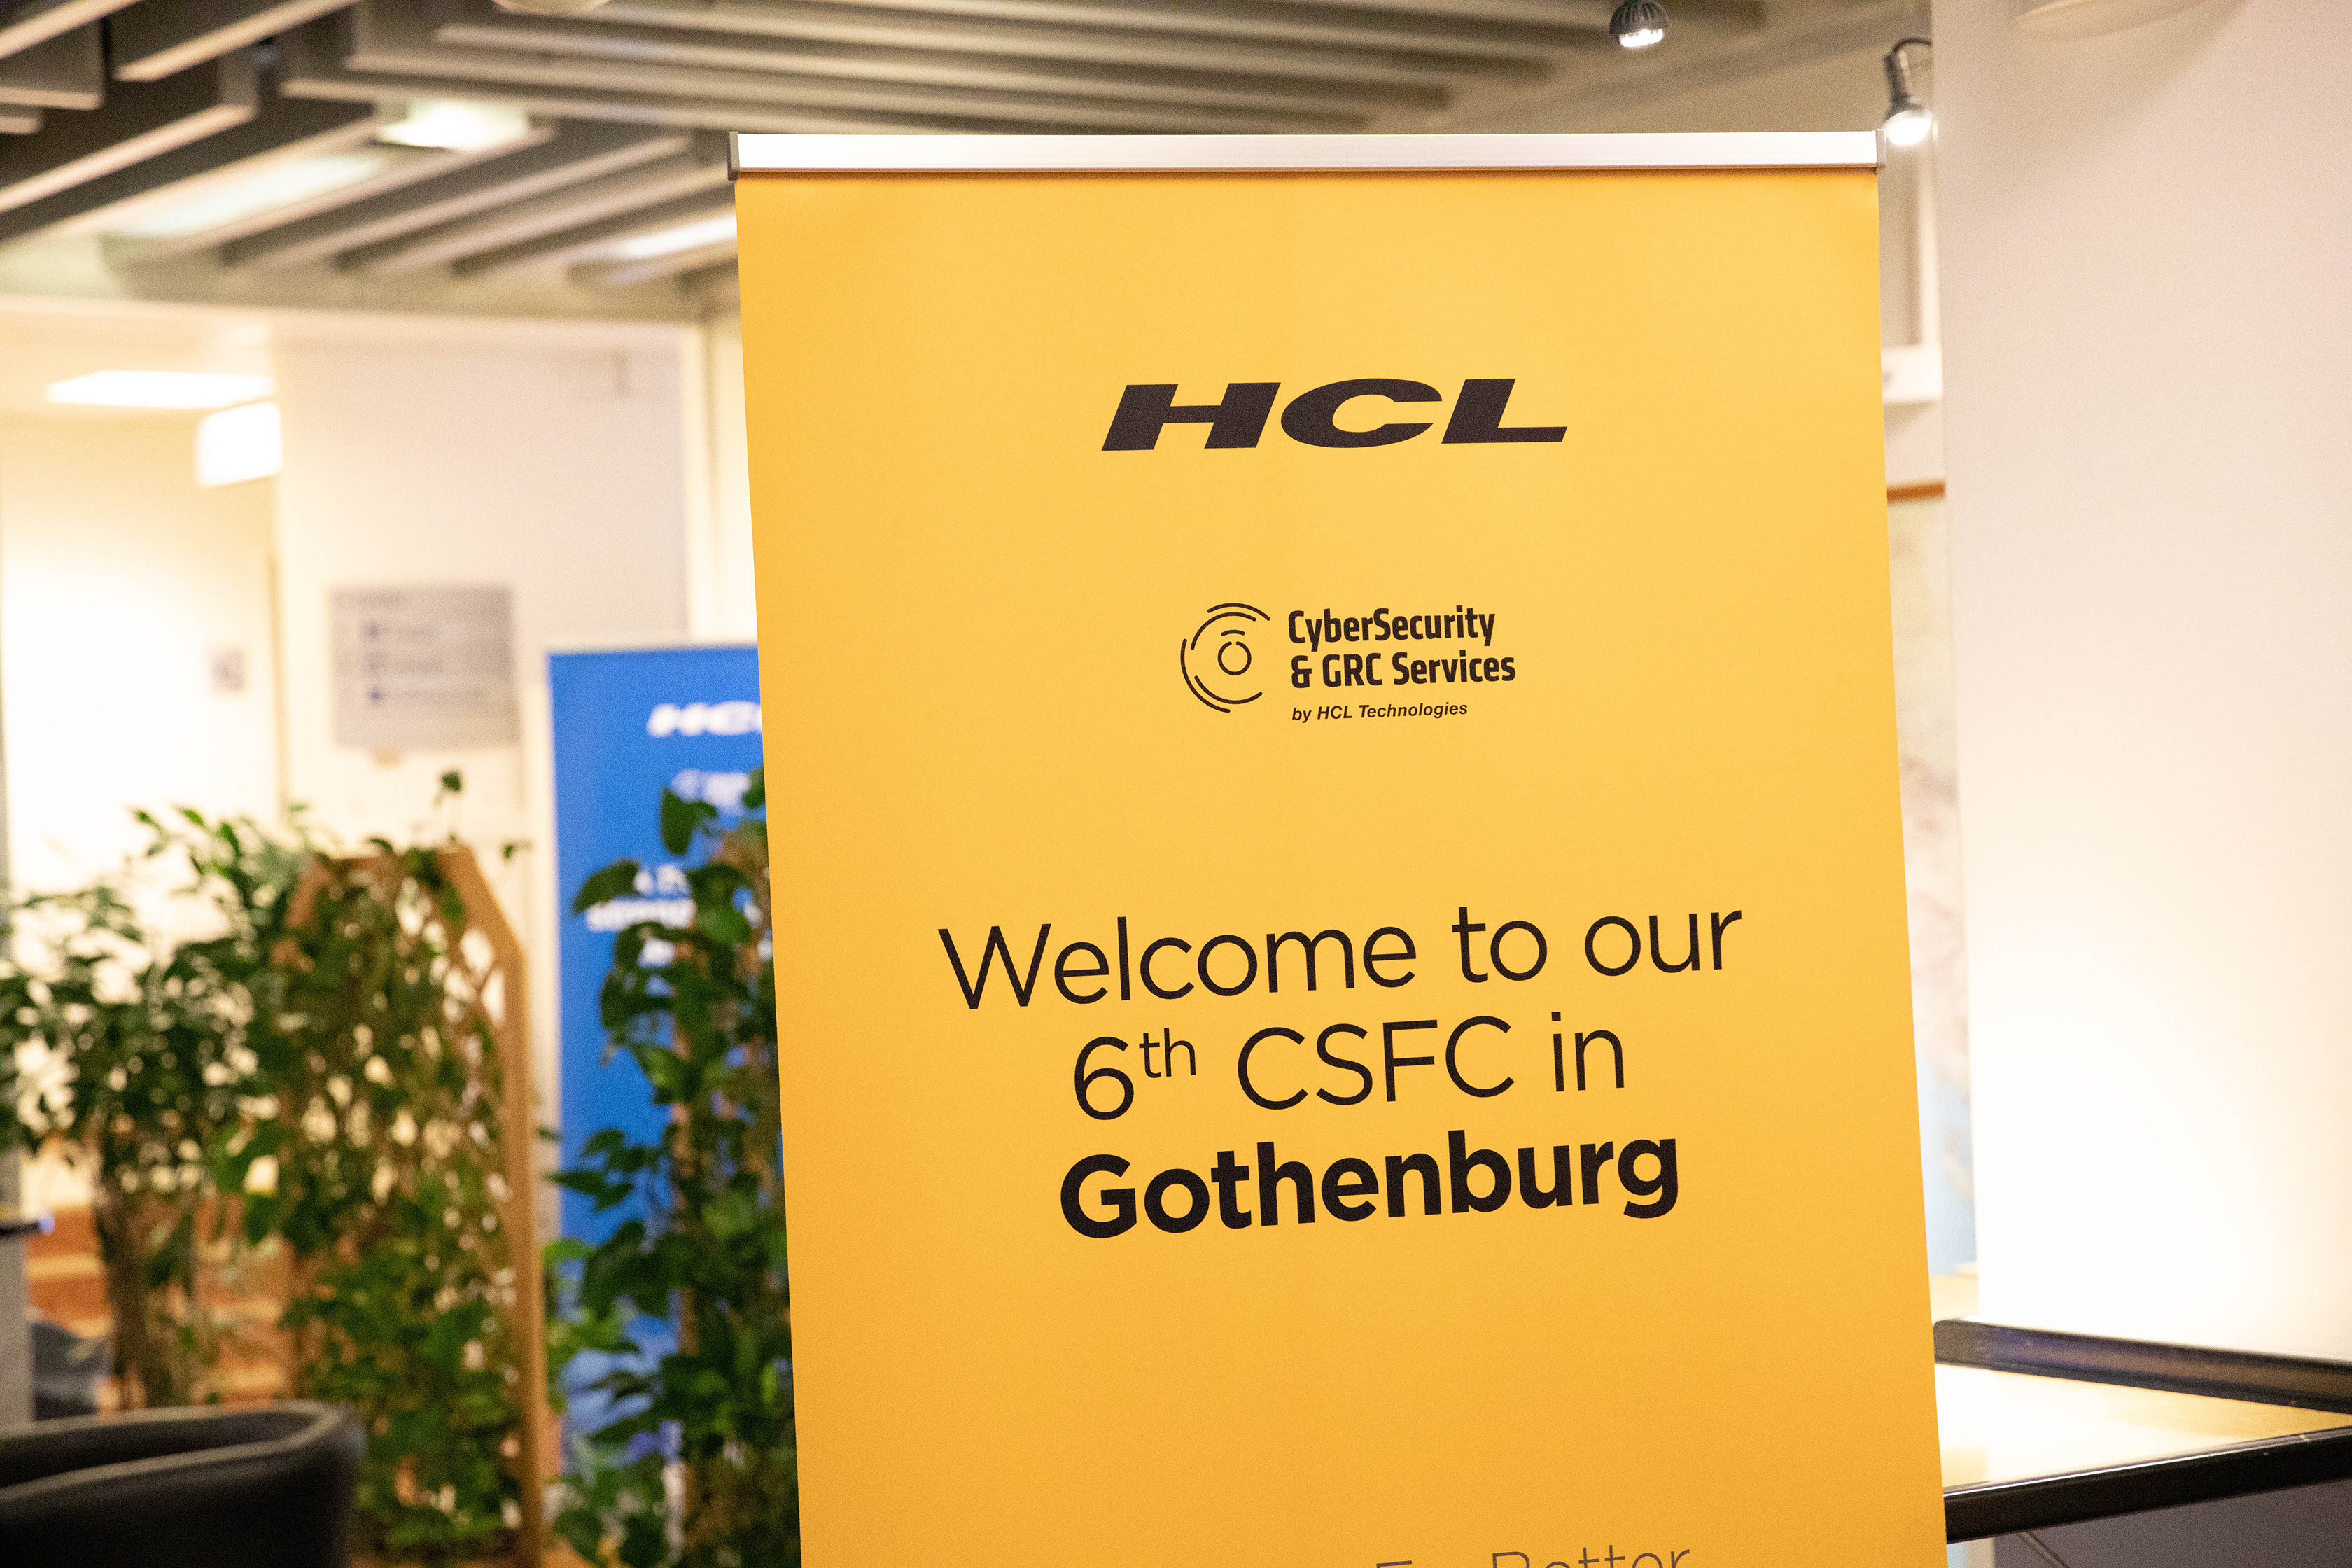 HCL opens first European cybersecurity centre in Gothenburg